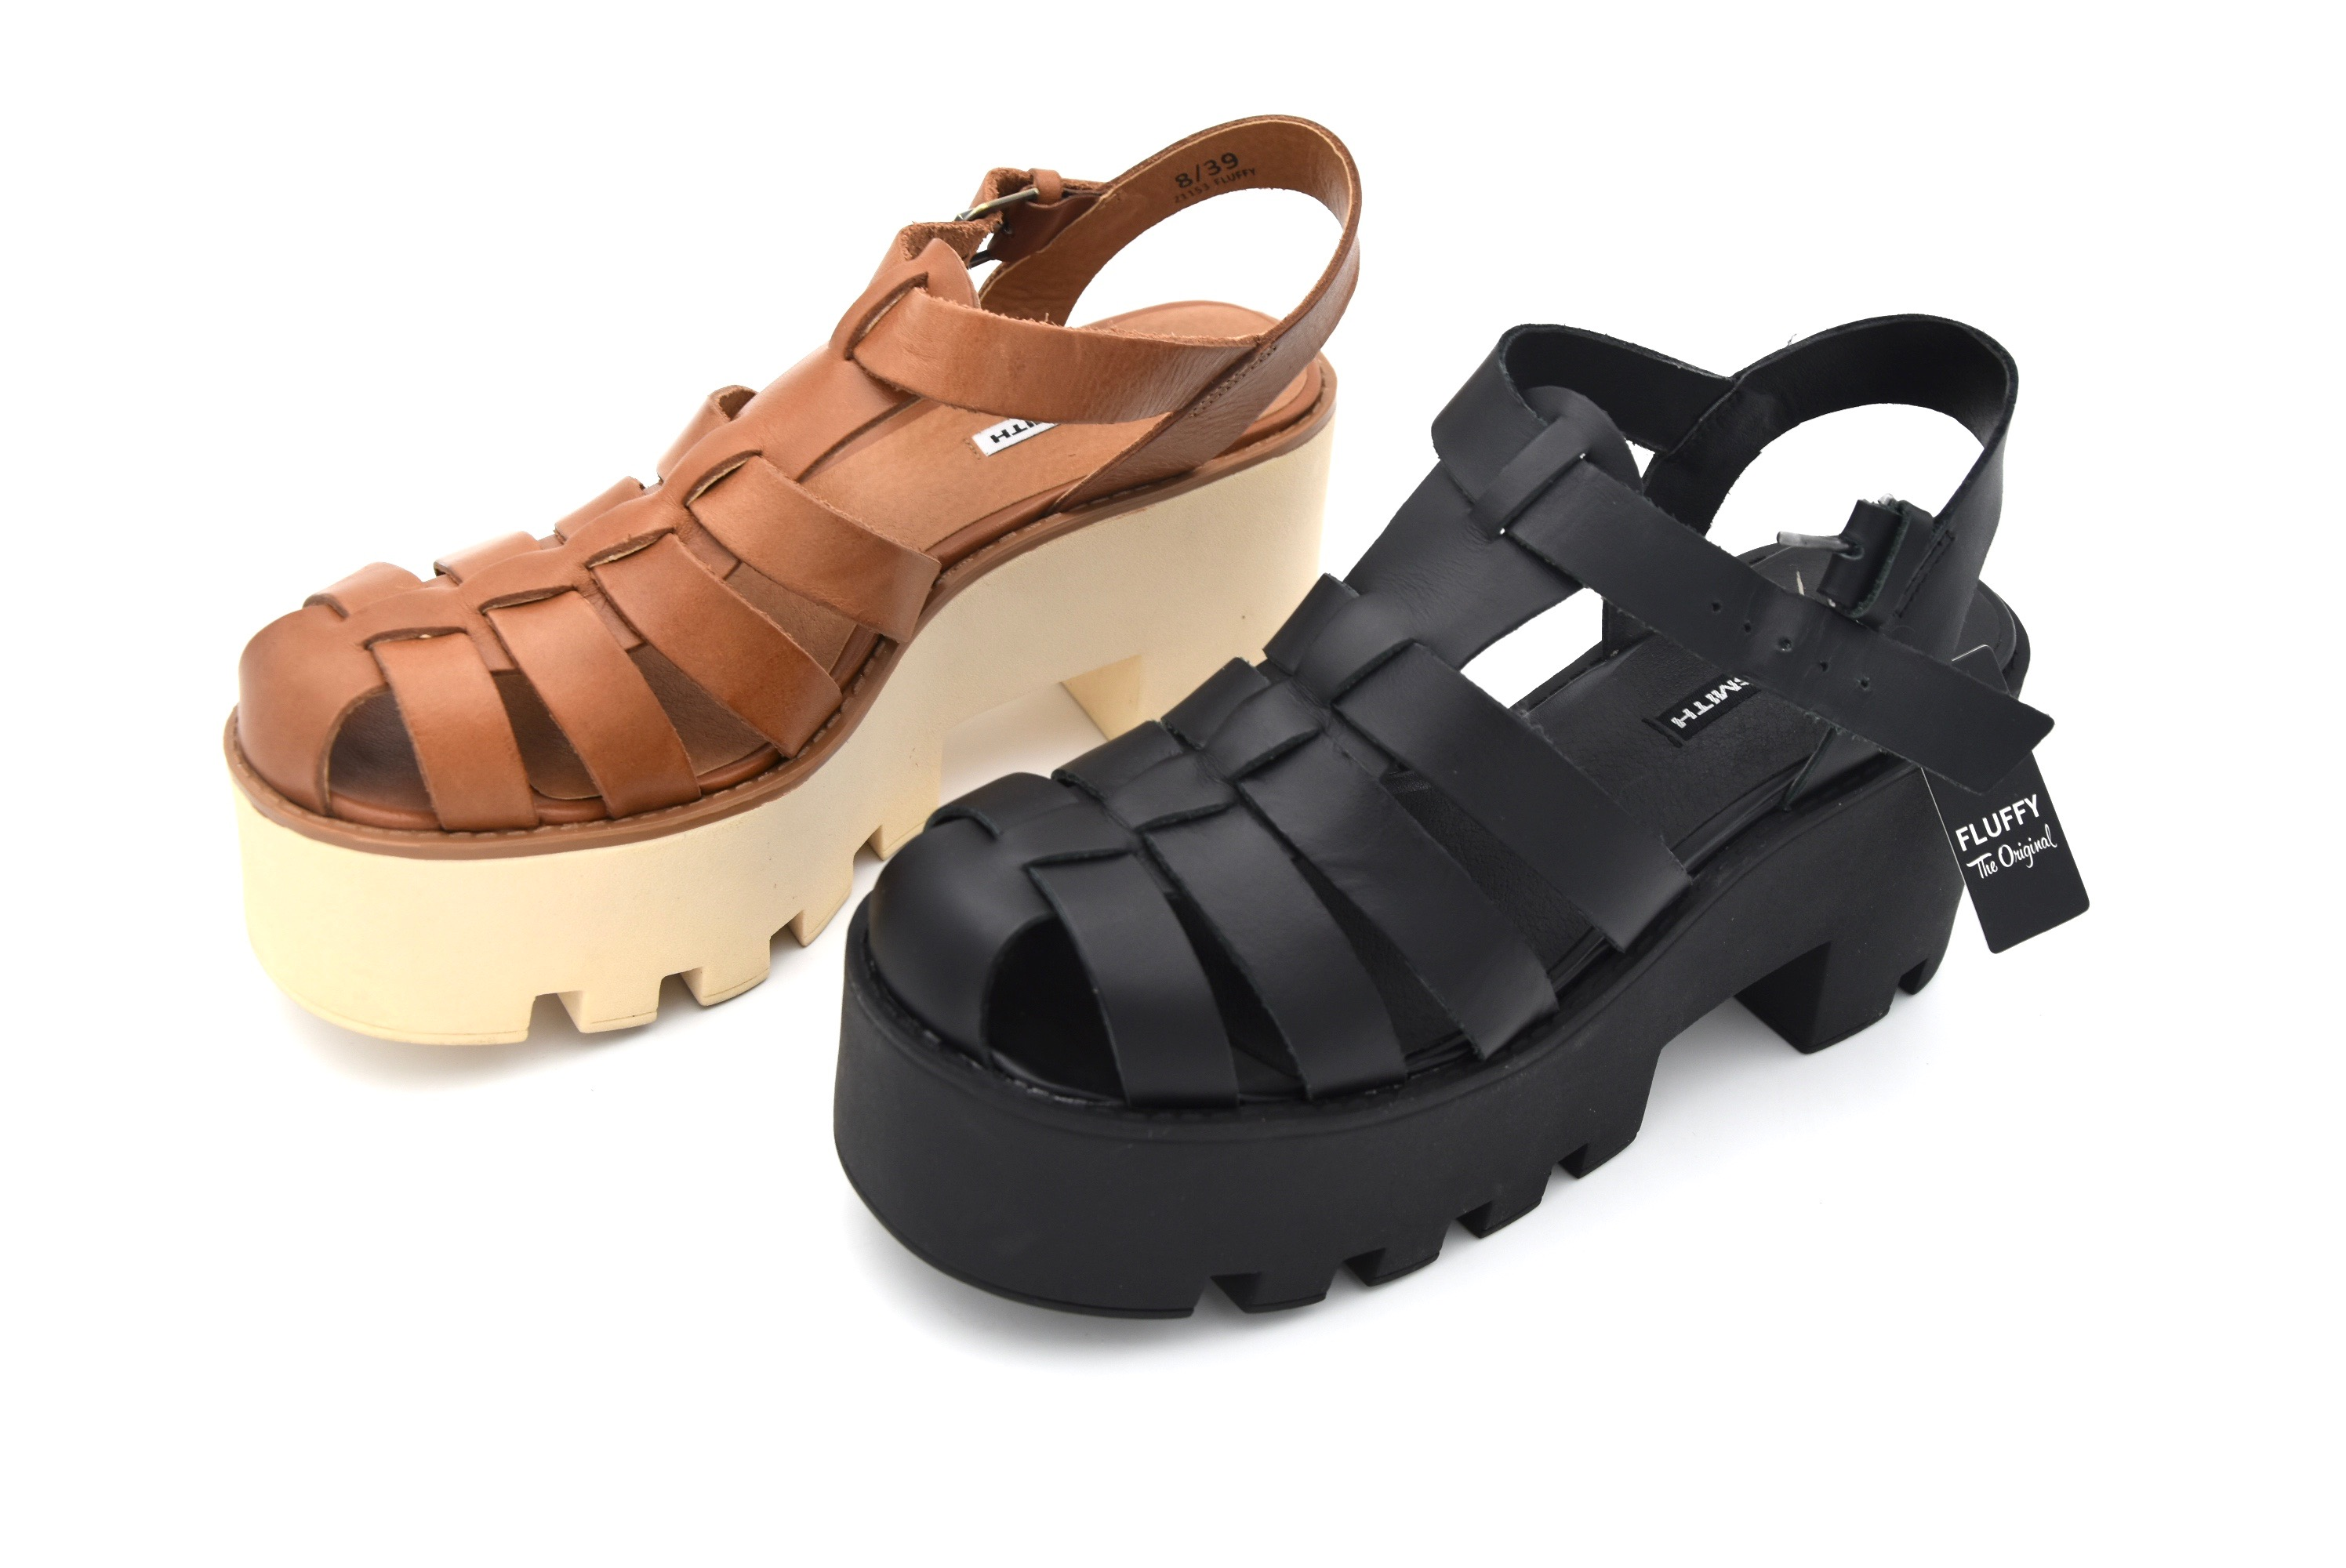 7aeaae4496a WINDSORSMITH WOMAN SANDALS SHOES CASUAL FREE TIME LEATHER CODE FLUFFY